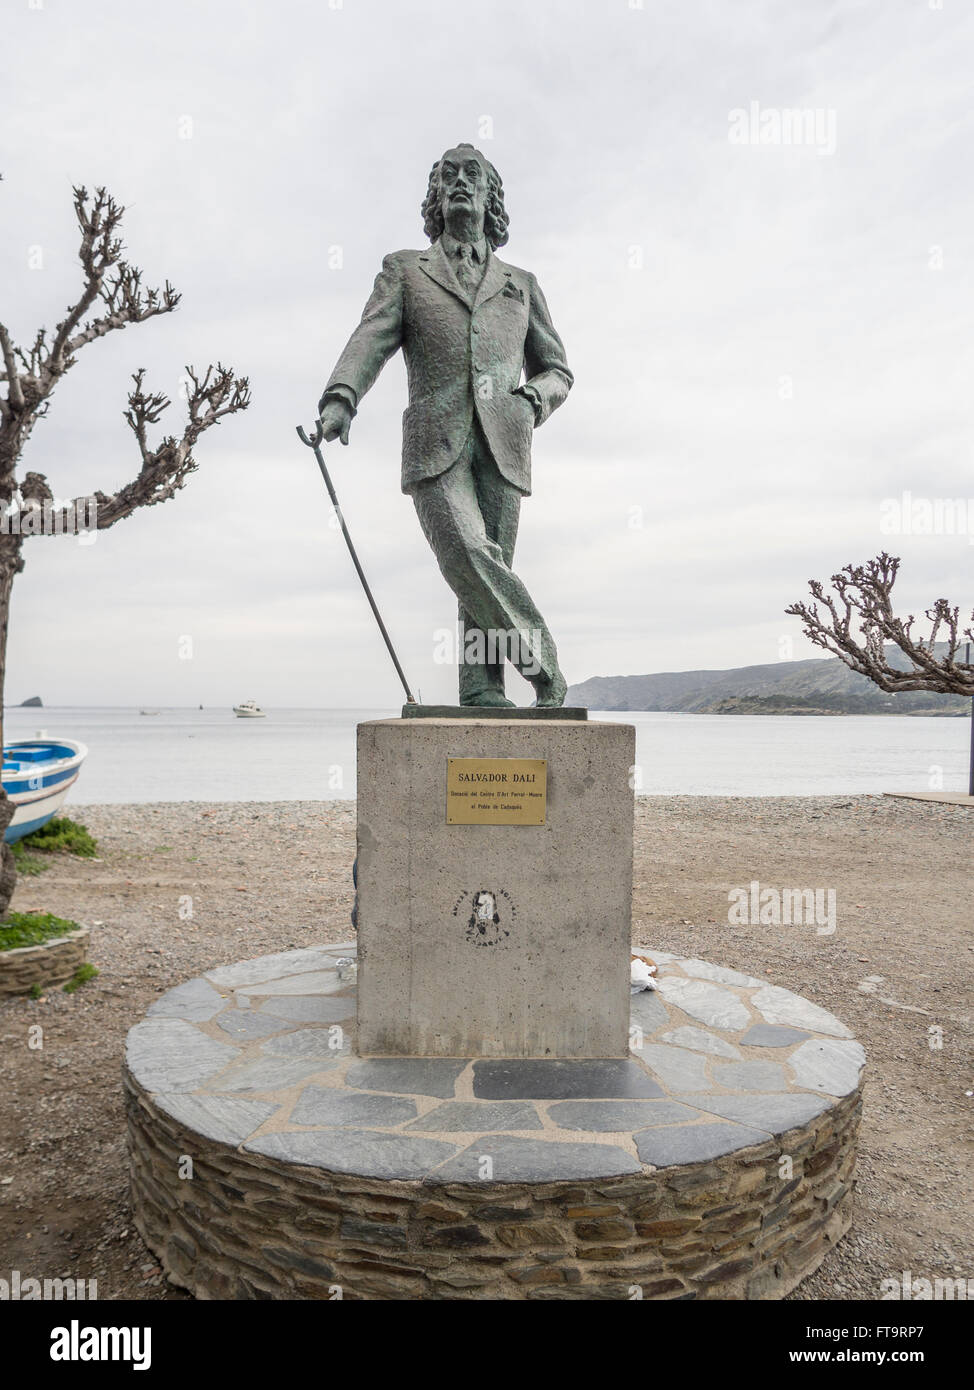 Statue of Salvador Dali on Cadaque Beach. Leaning on his cane a dapper Dali presides over the village beach and - Stock Image